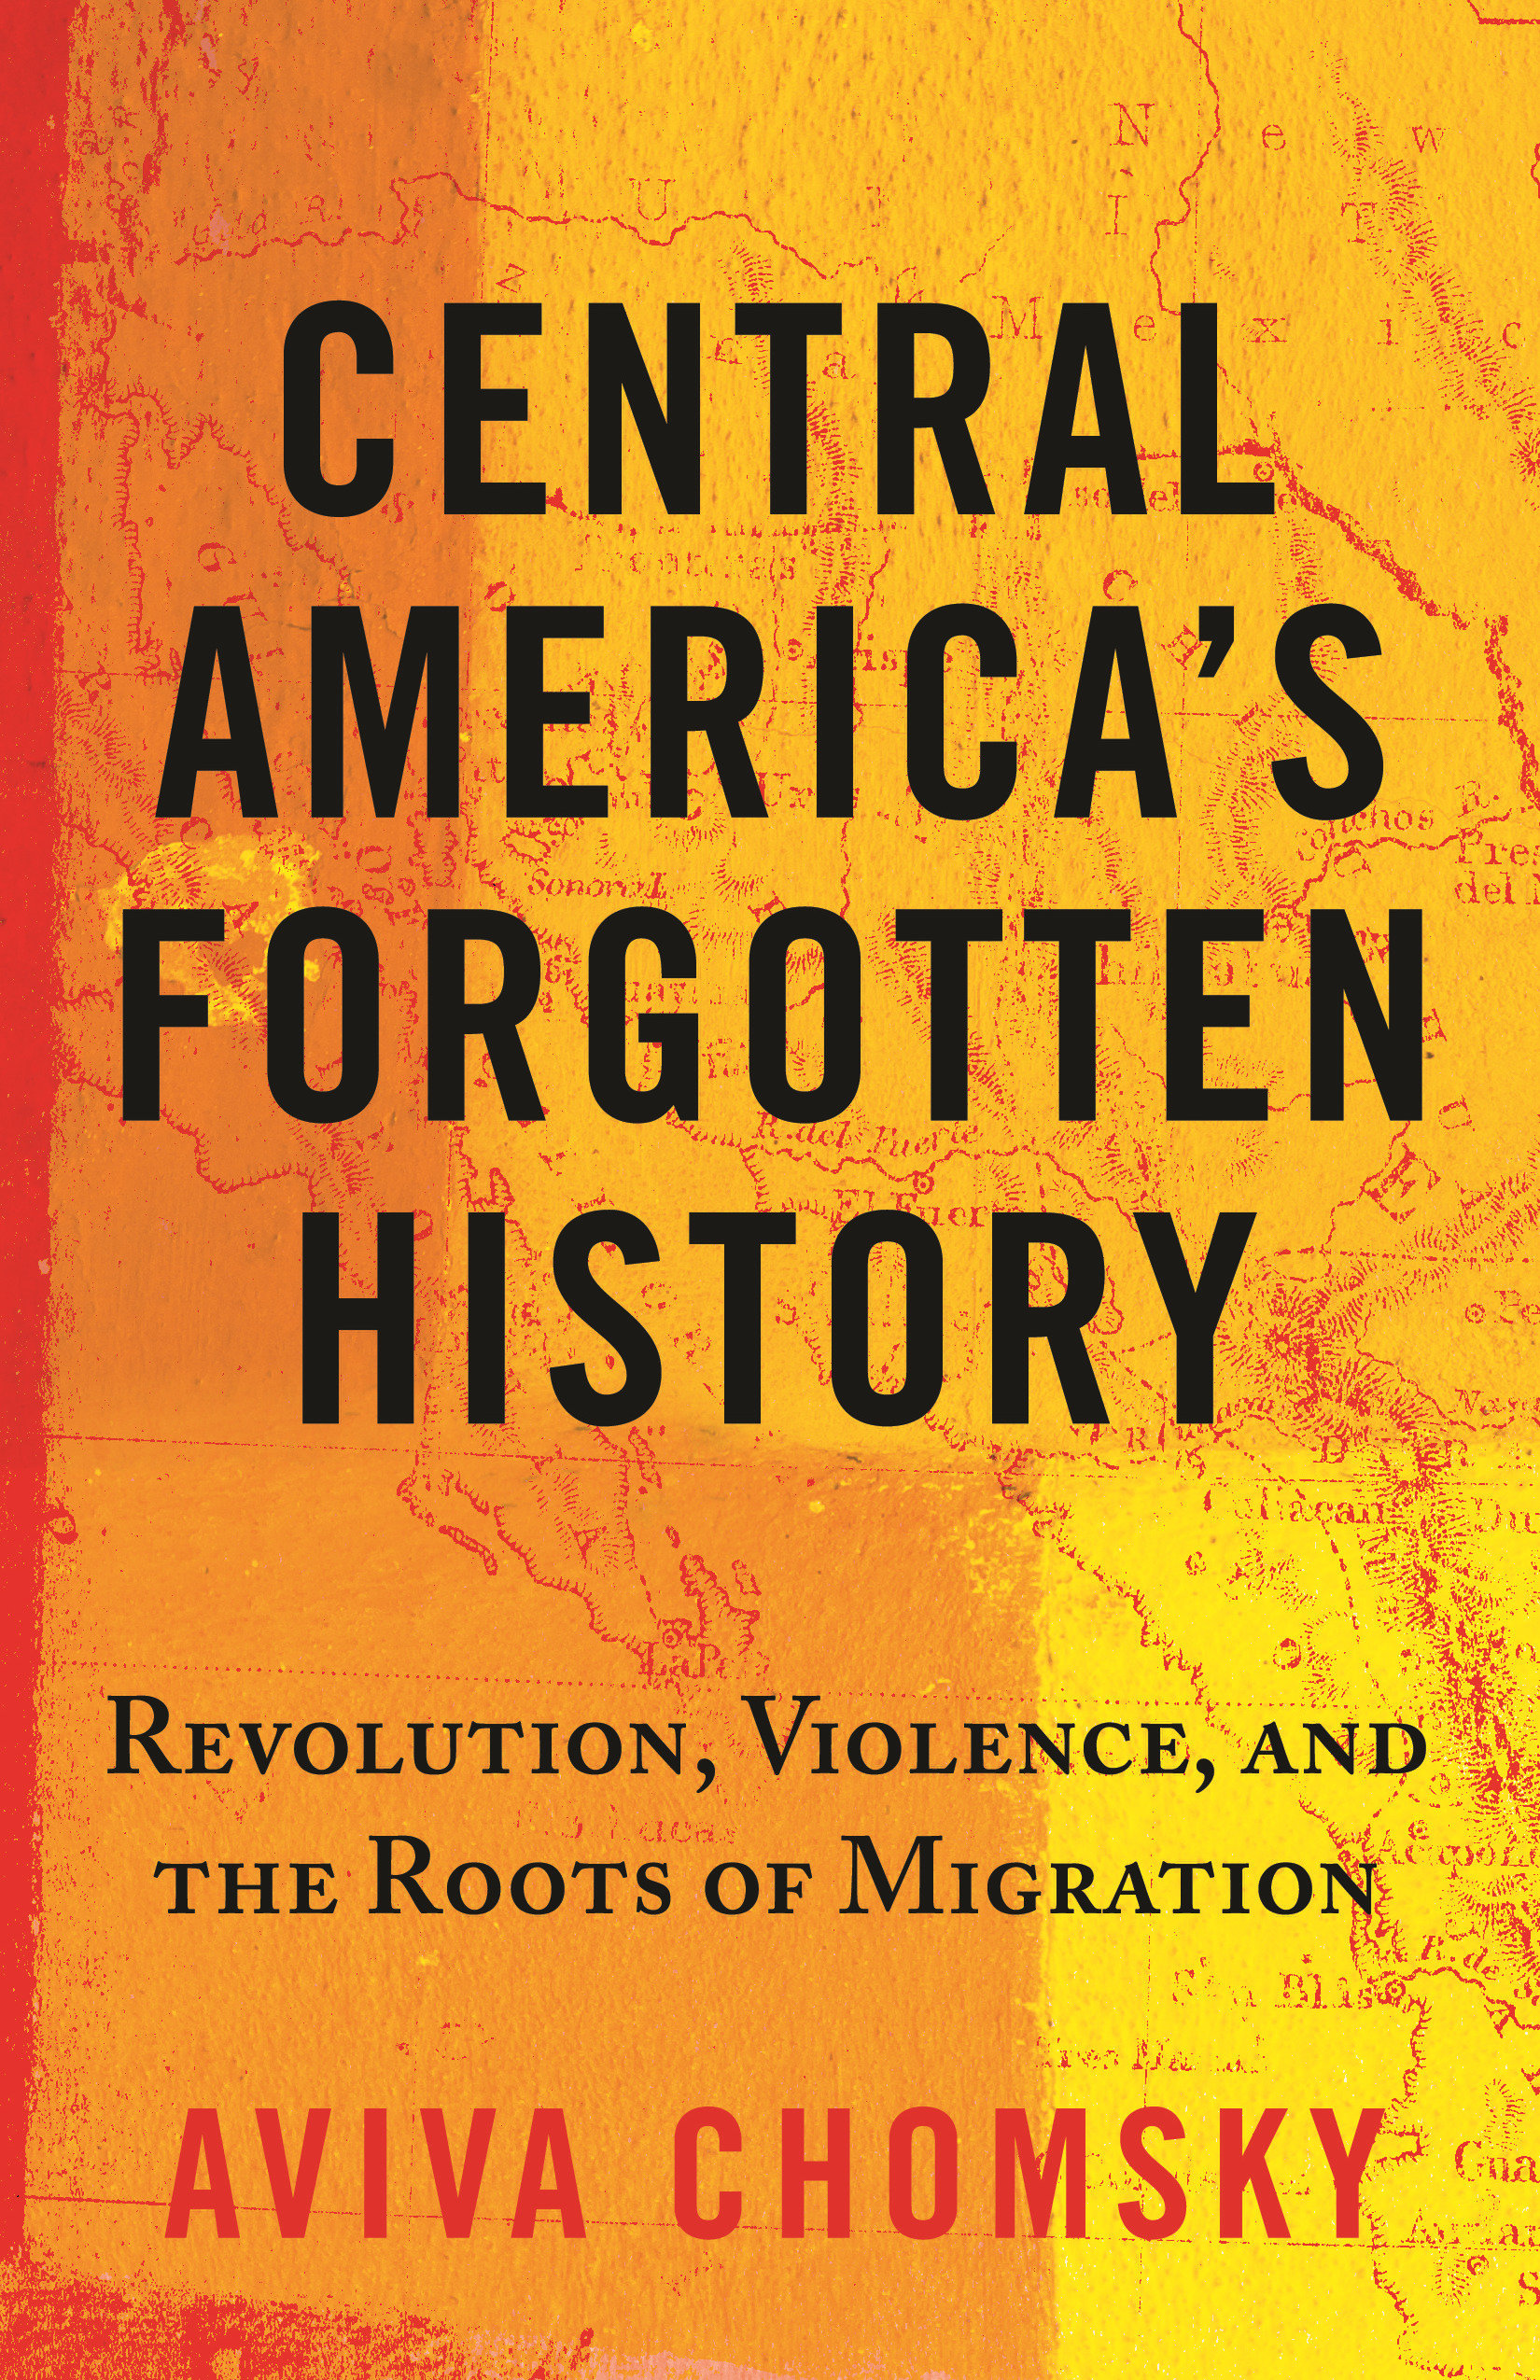 Central America's Forgotten History Revolution, Violence, and the Roots of Migration